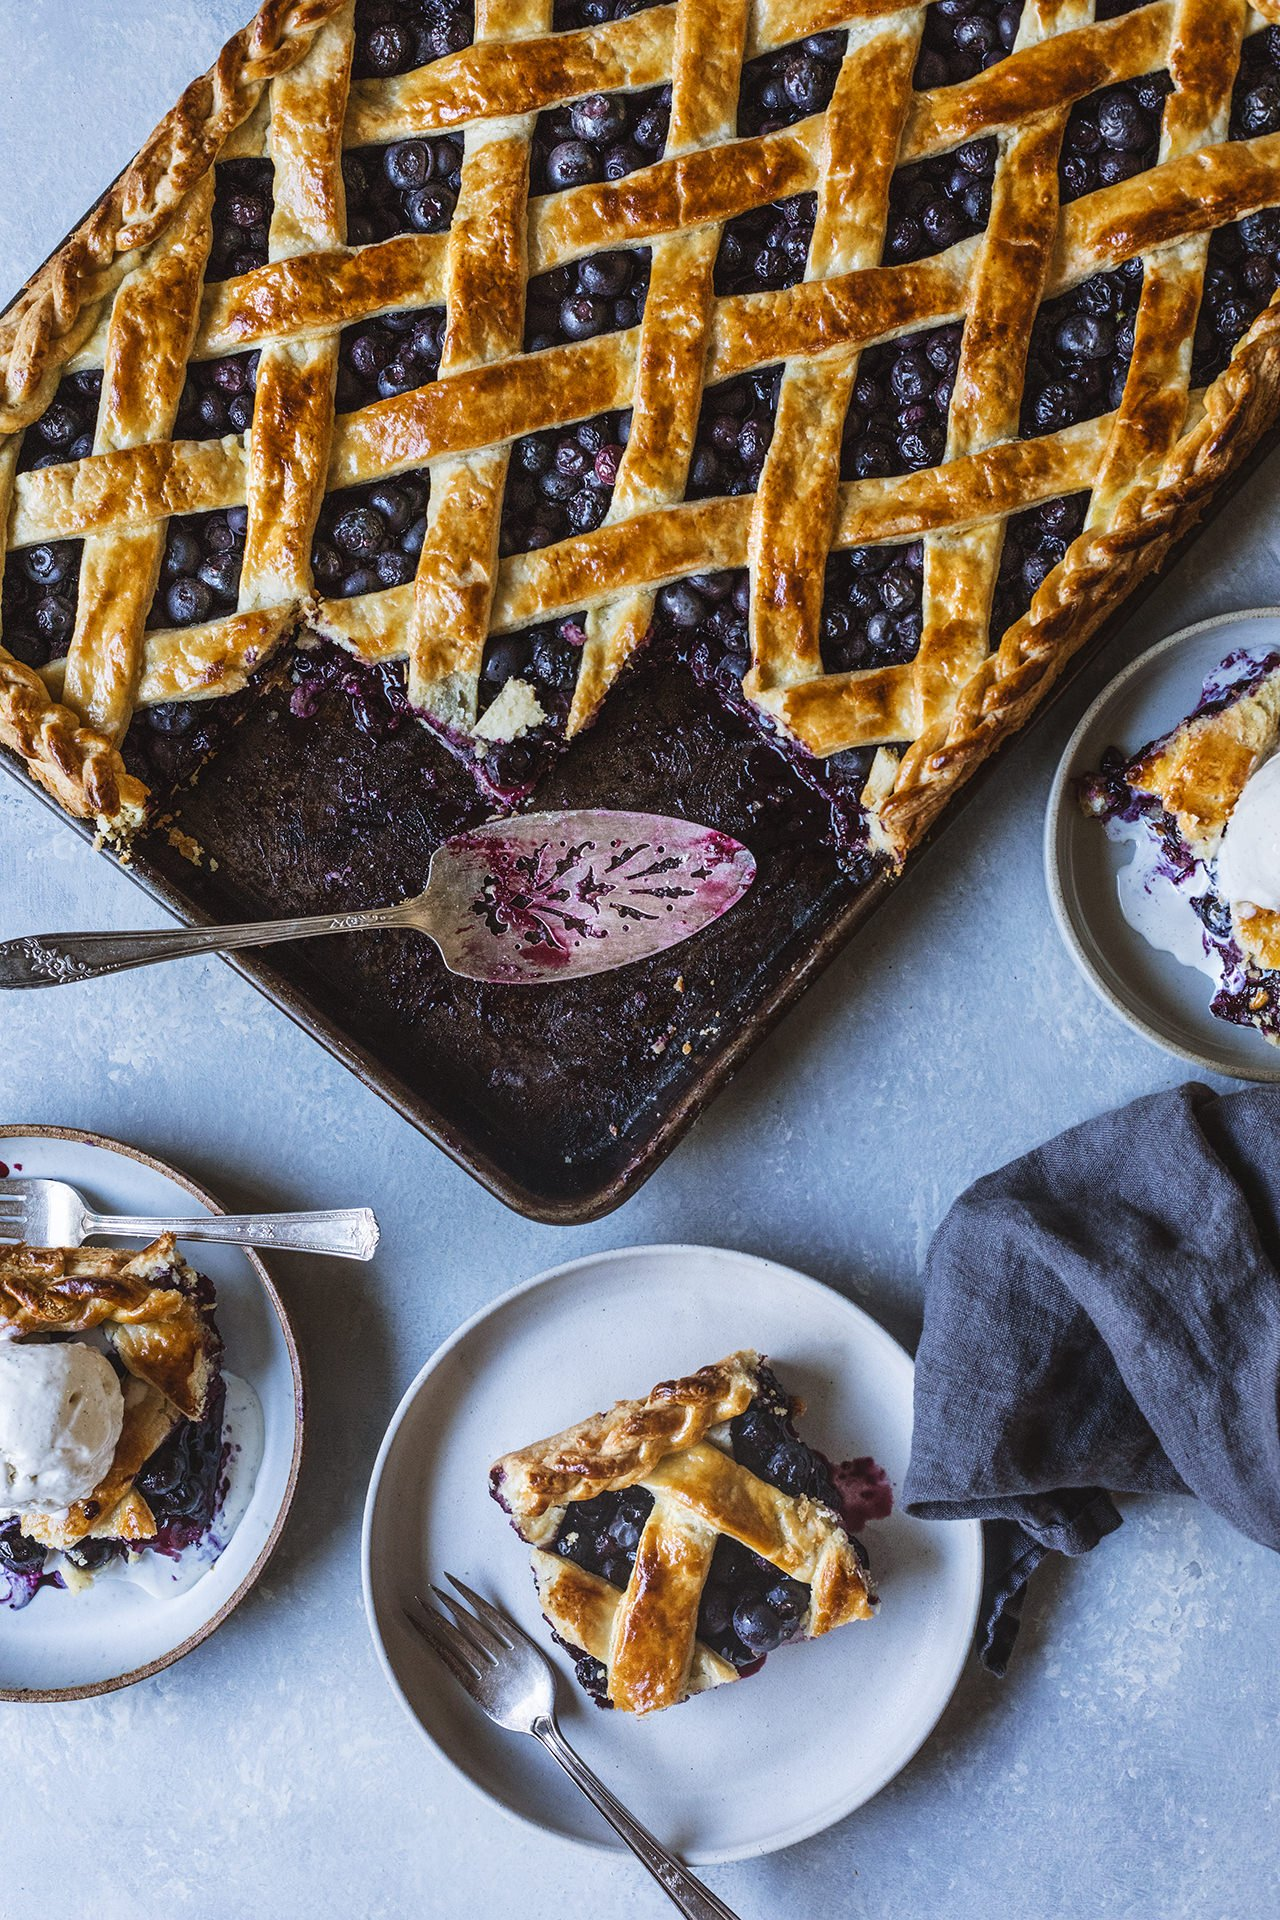 Blueberry Bourbon Slab Pie | HonestlyYUM (honestlyyum.com)